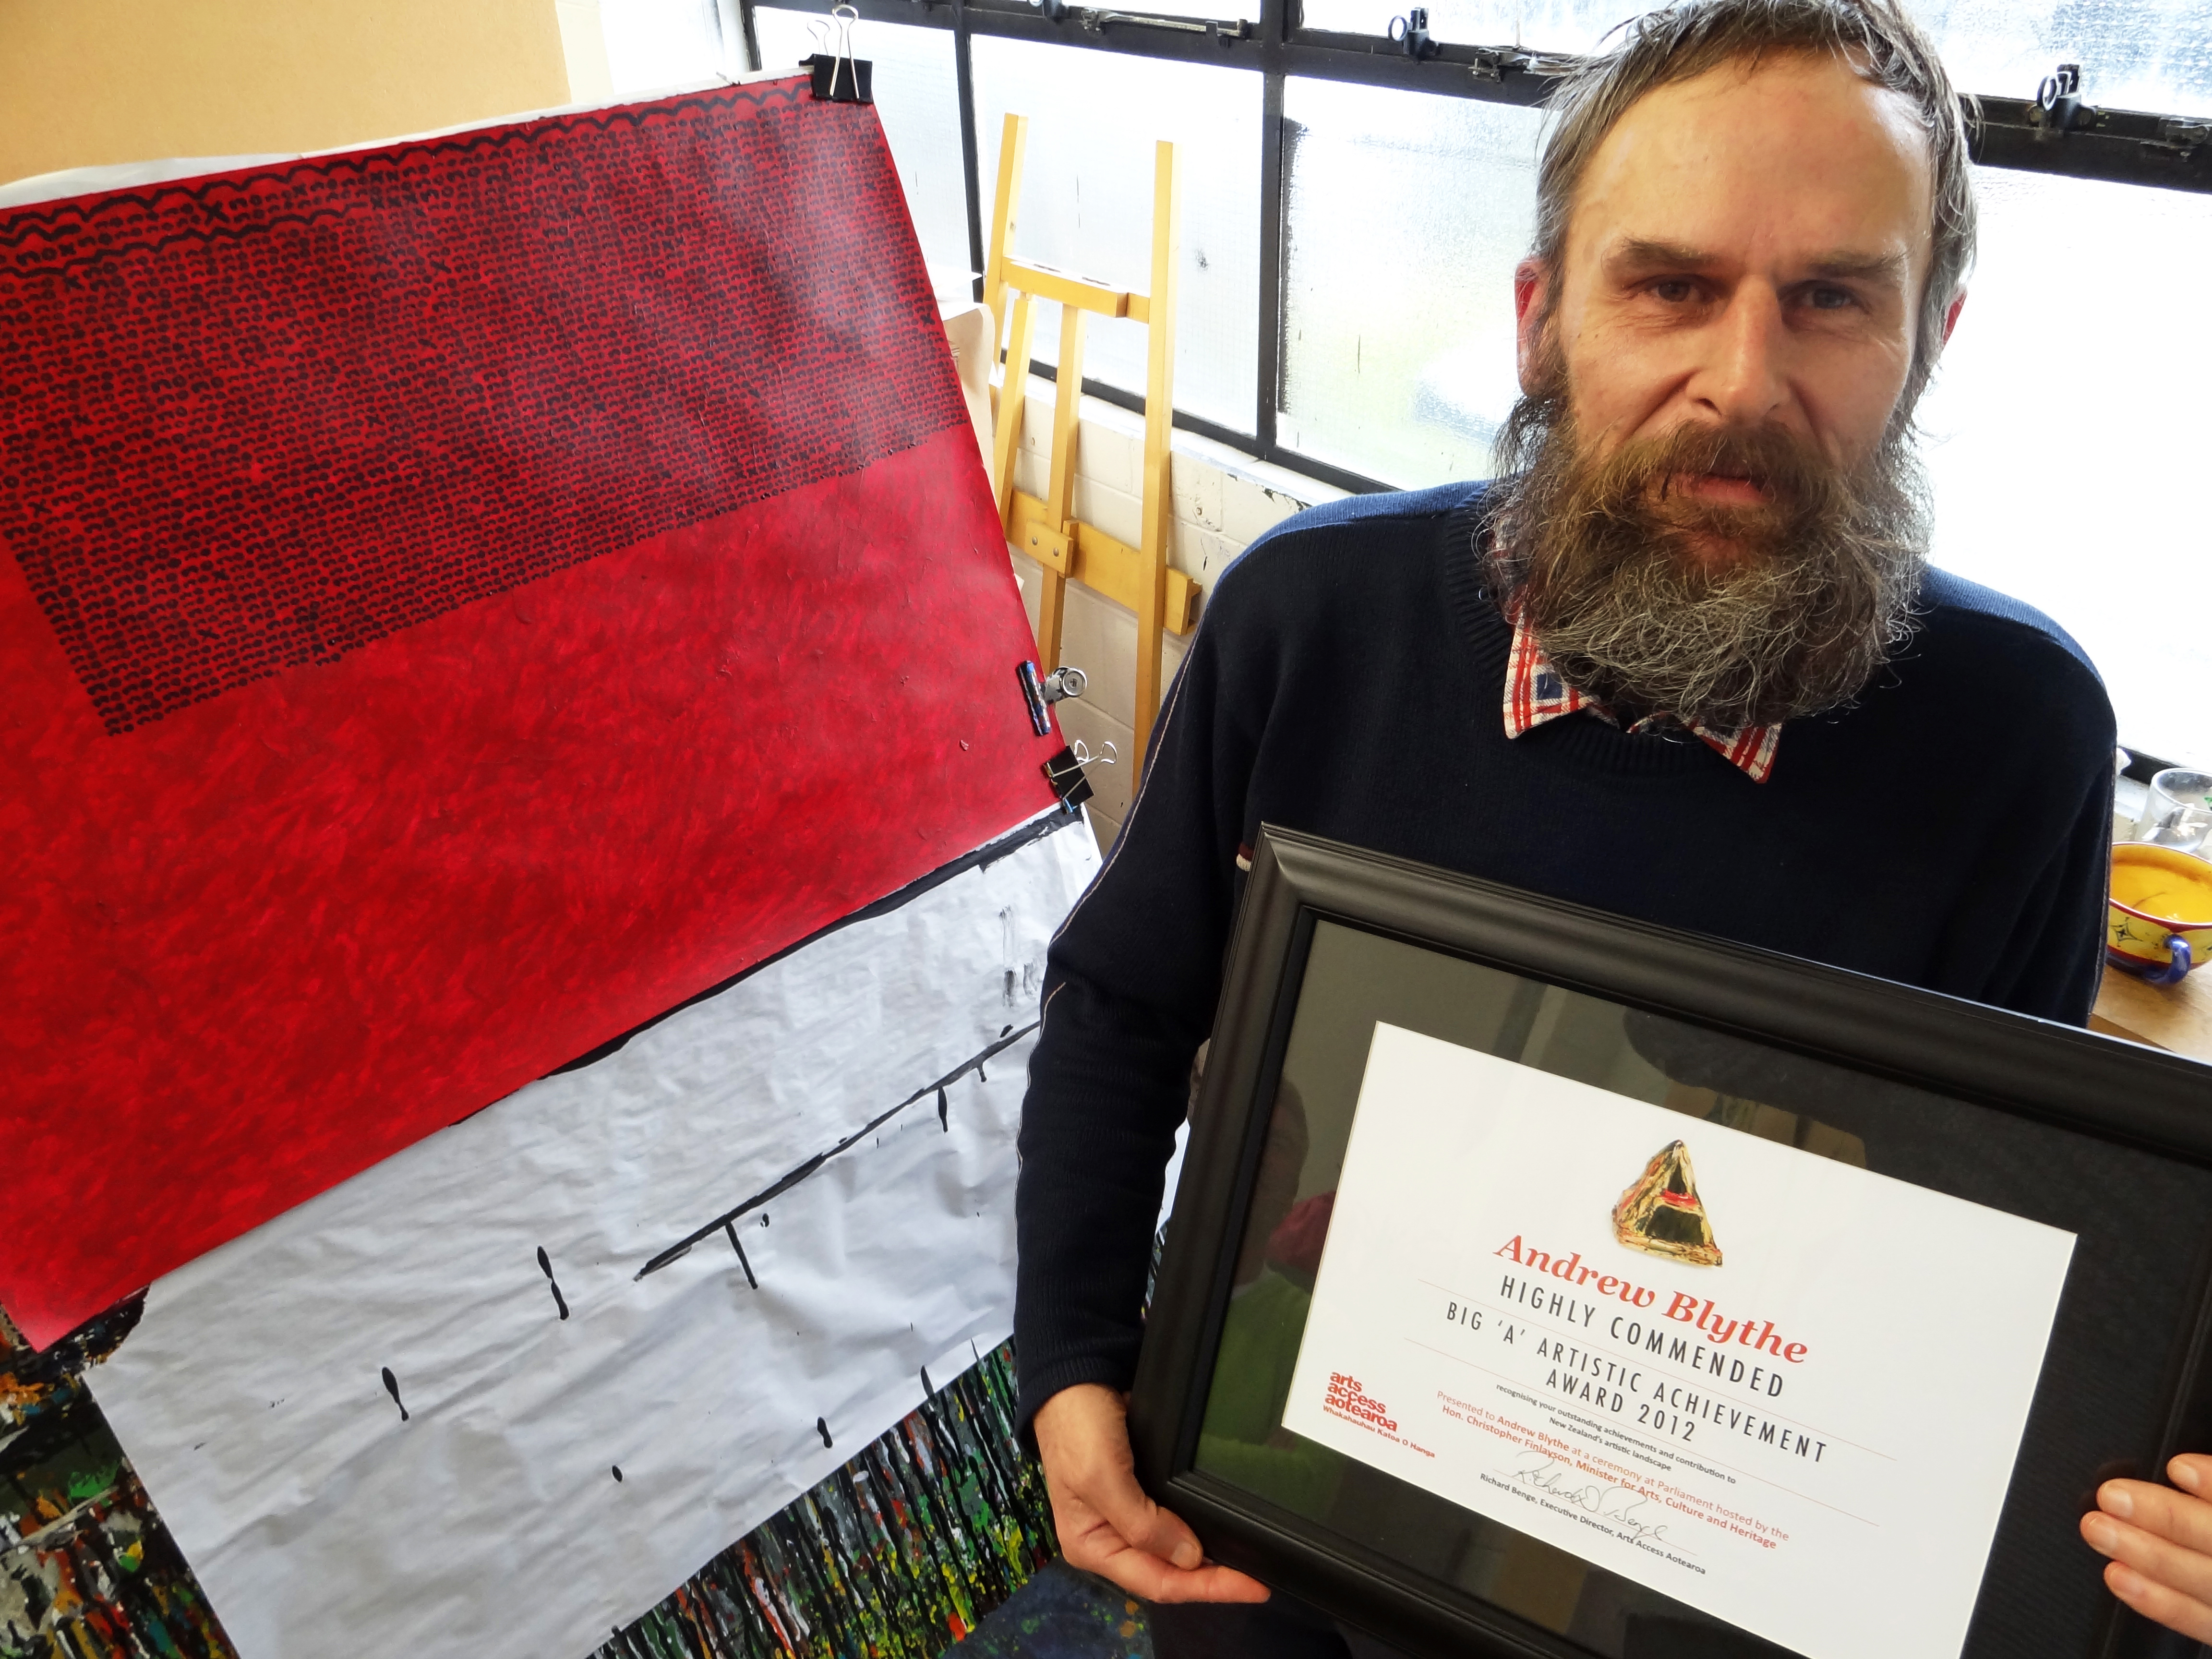 Andrew Blythe with his Highly Commended certificate in the Big 'A' Artistic Achievement Award